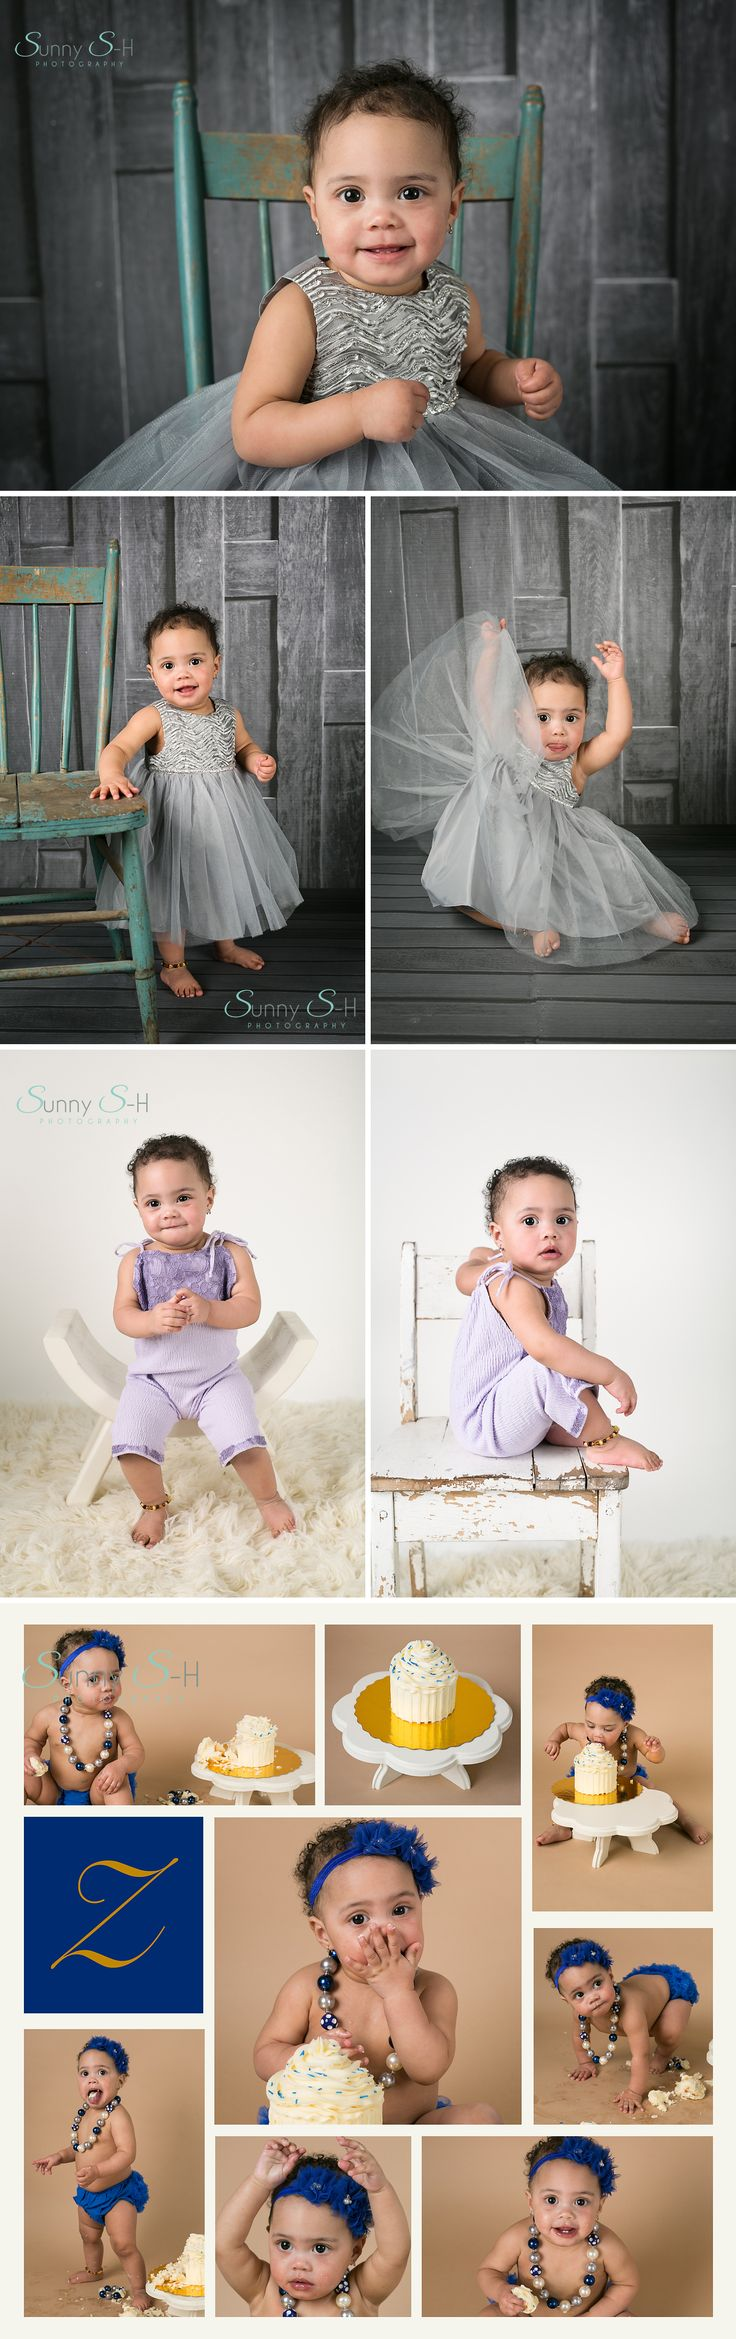 Super sweet first birthday cake smash milestone photo shoot.